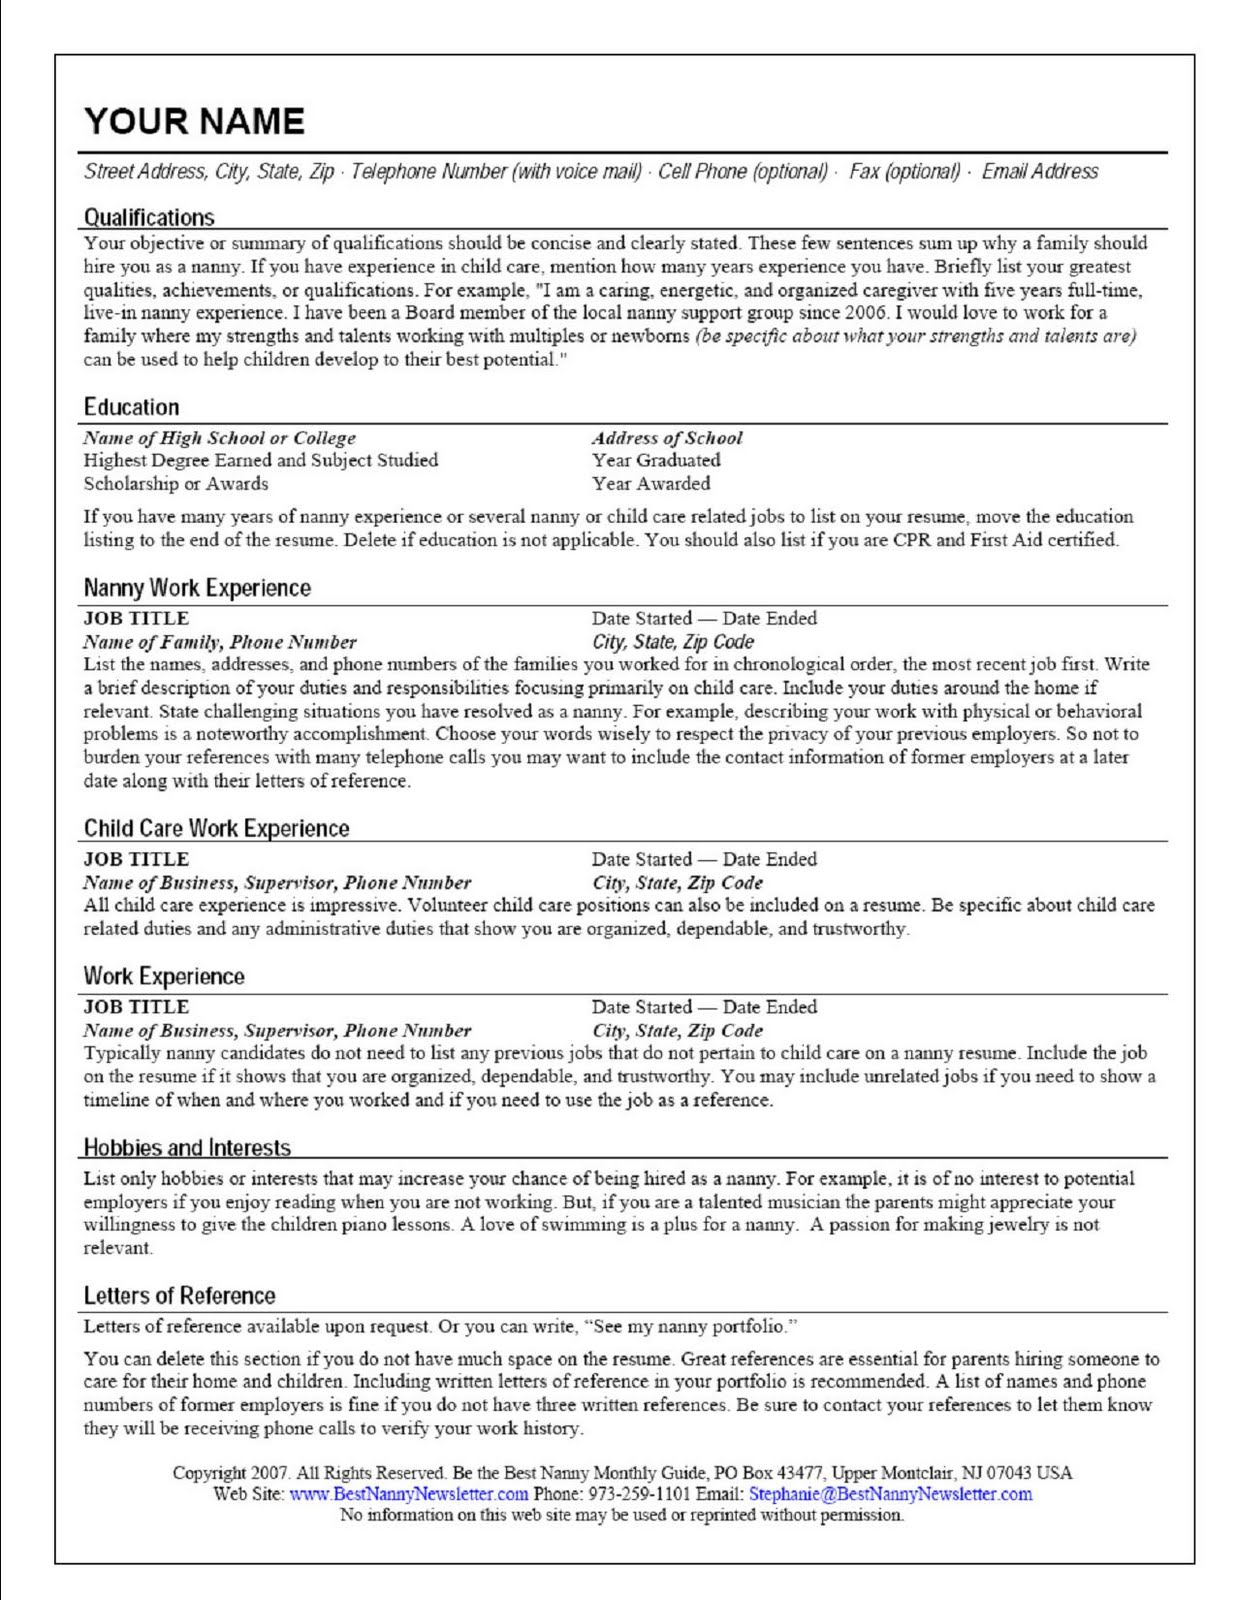 resume for nanny paralegal resume objective examples tig welder how to be the best nanny the standout nanny resume b standout nanny resumehtml